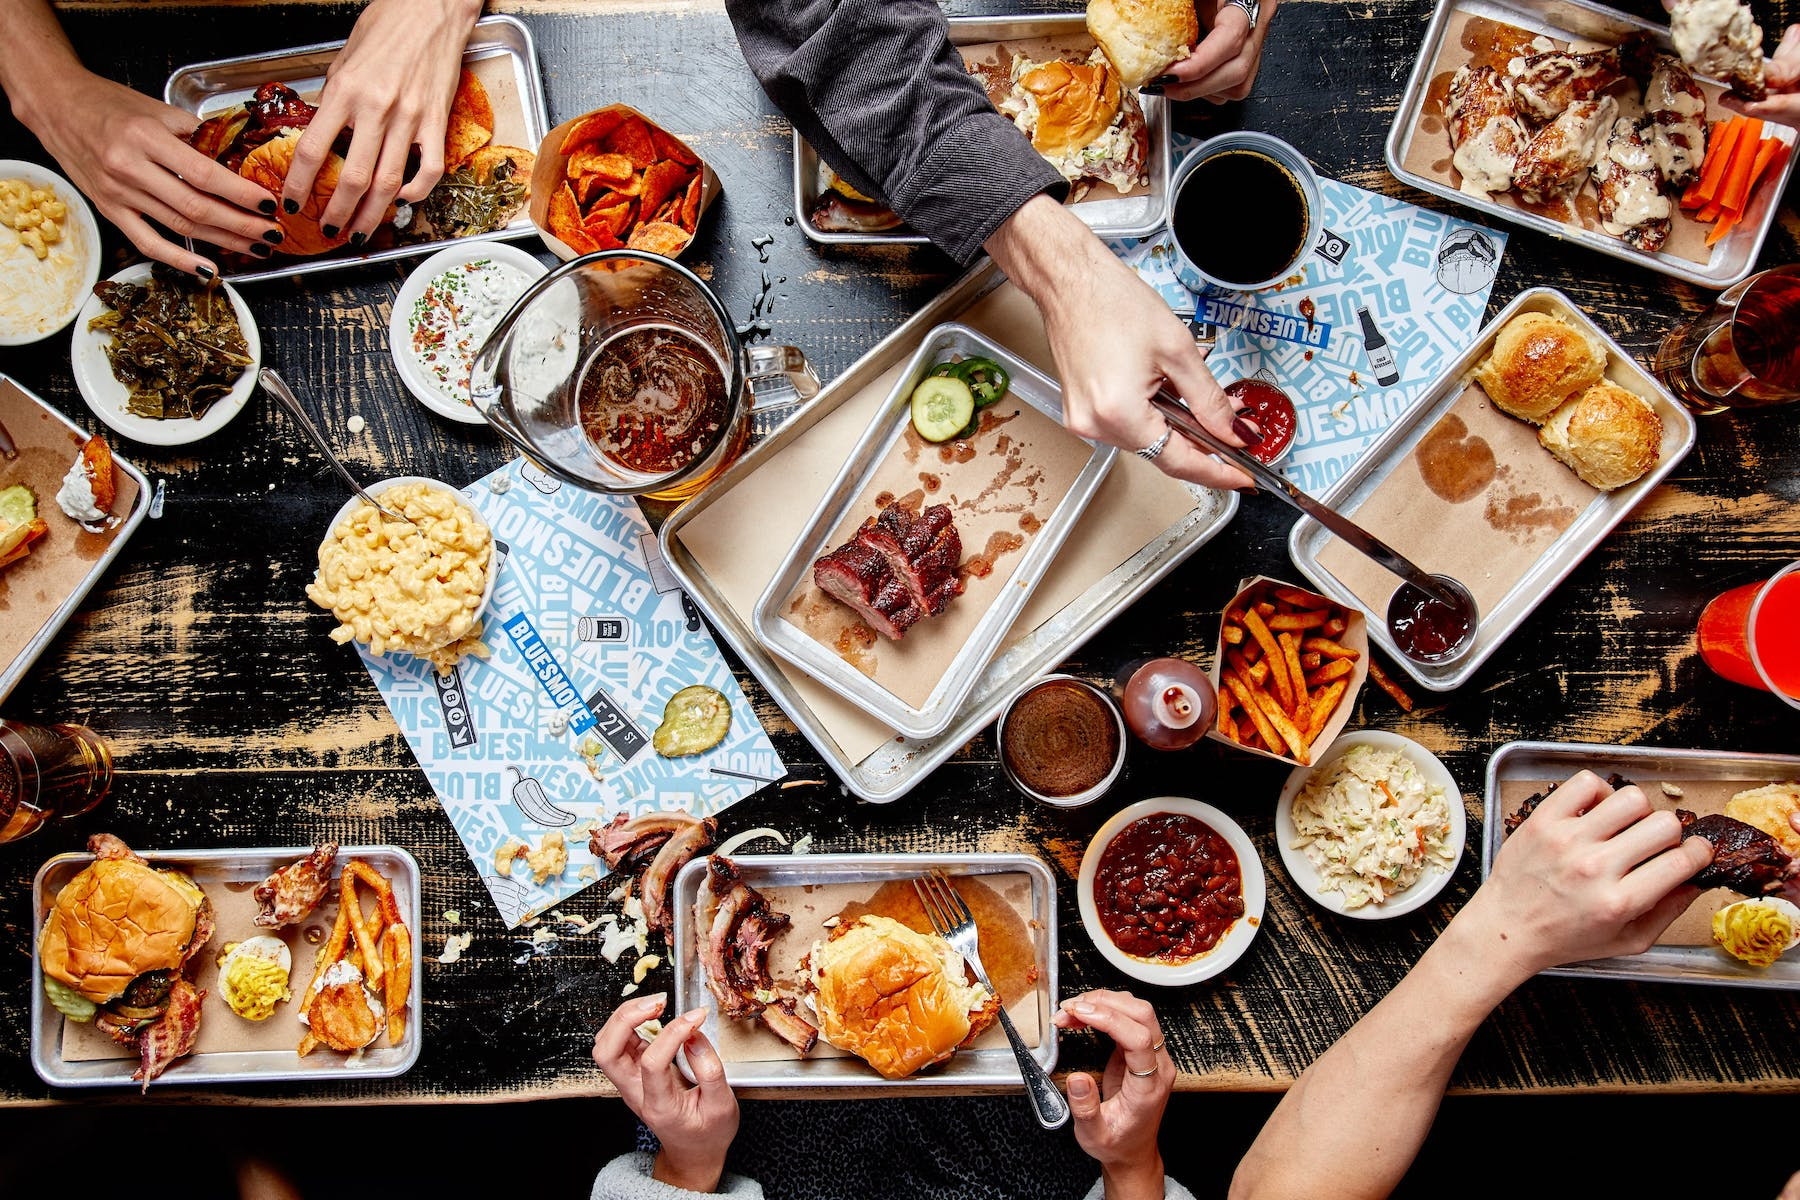 Group of people eating